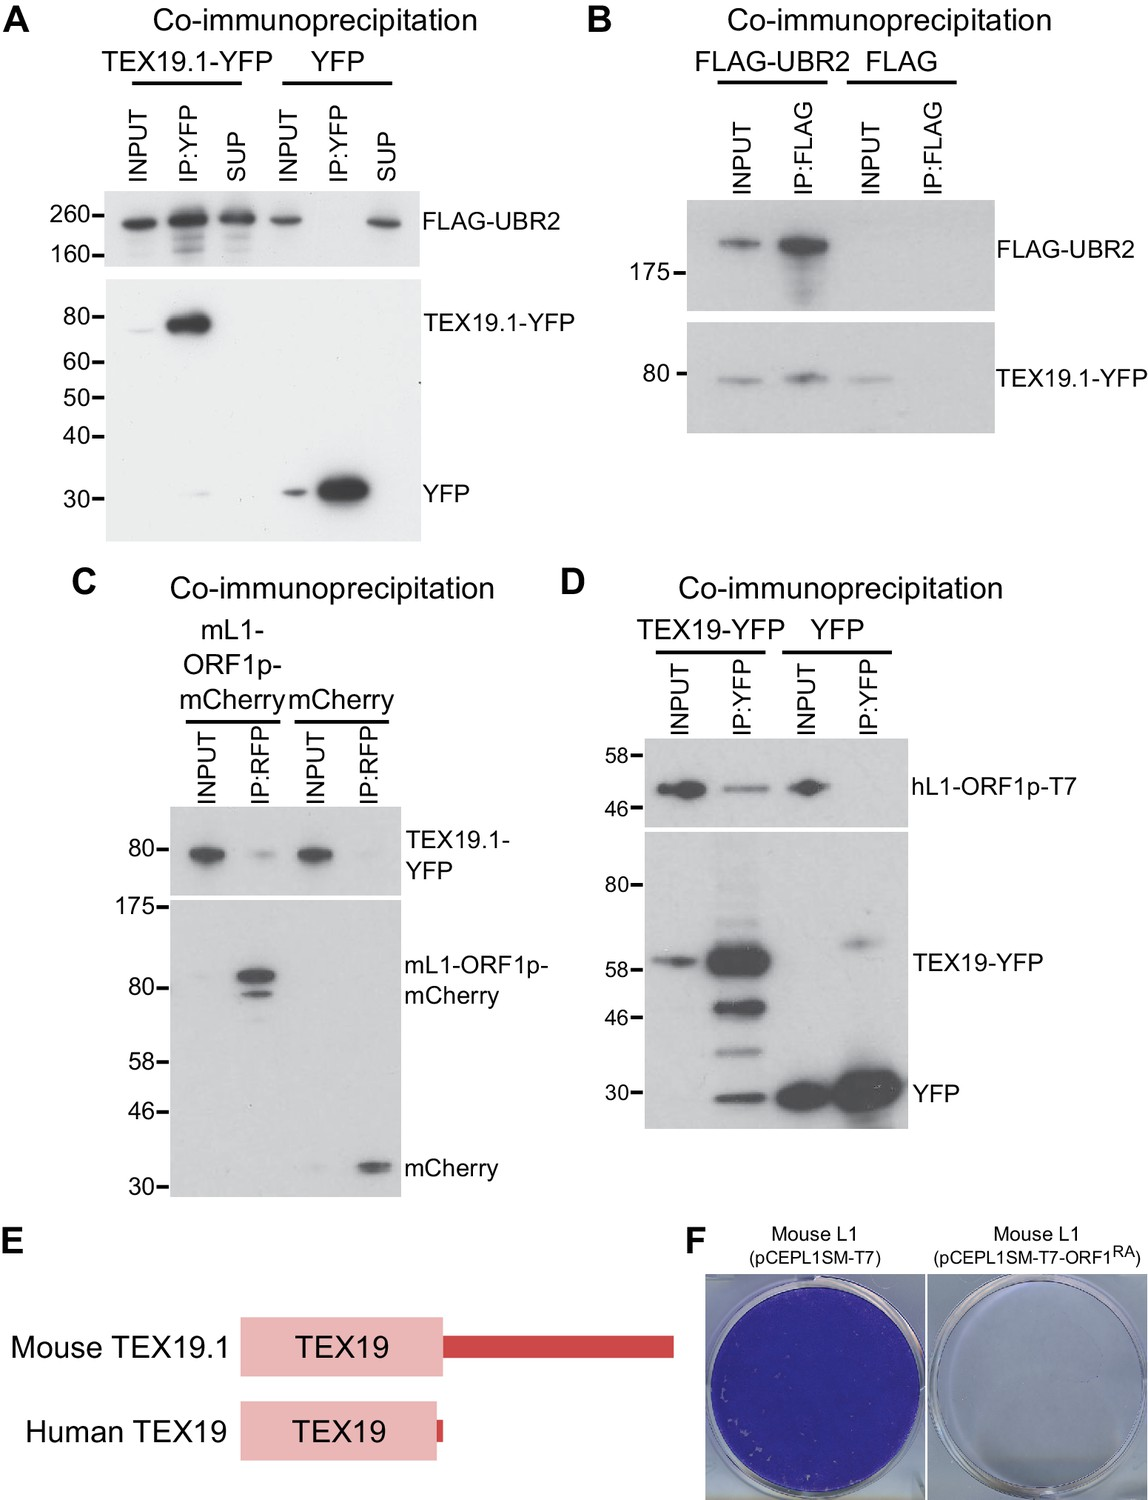 Mobilization of LINE-1 retrotransposons is restricted by Tex19 1 in